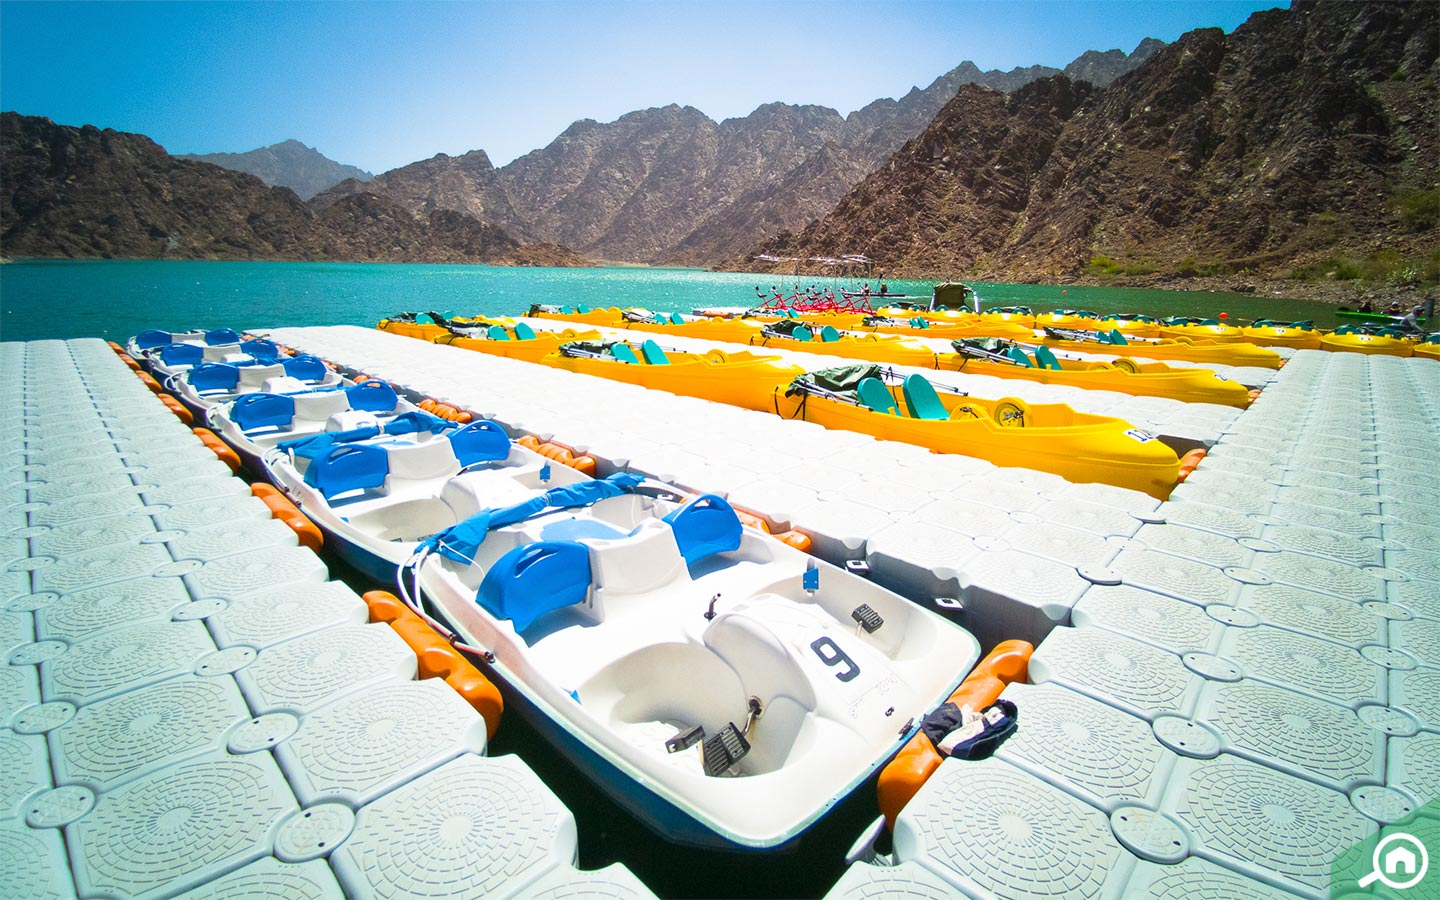 Boating and kayaking in Hatta Dam